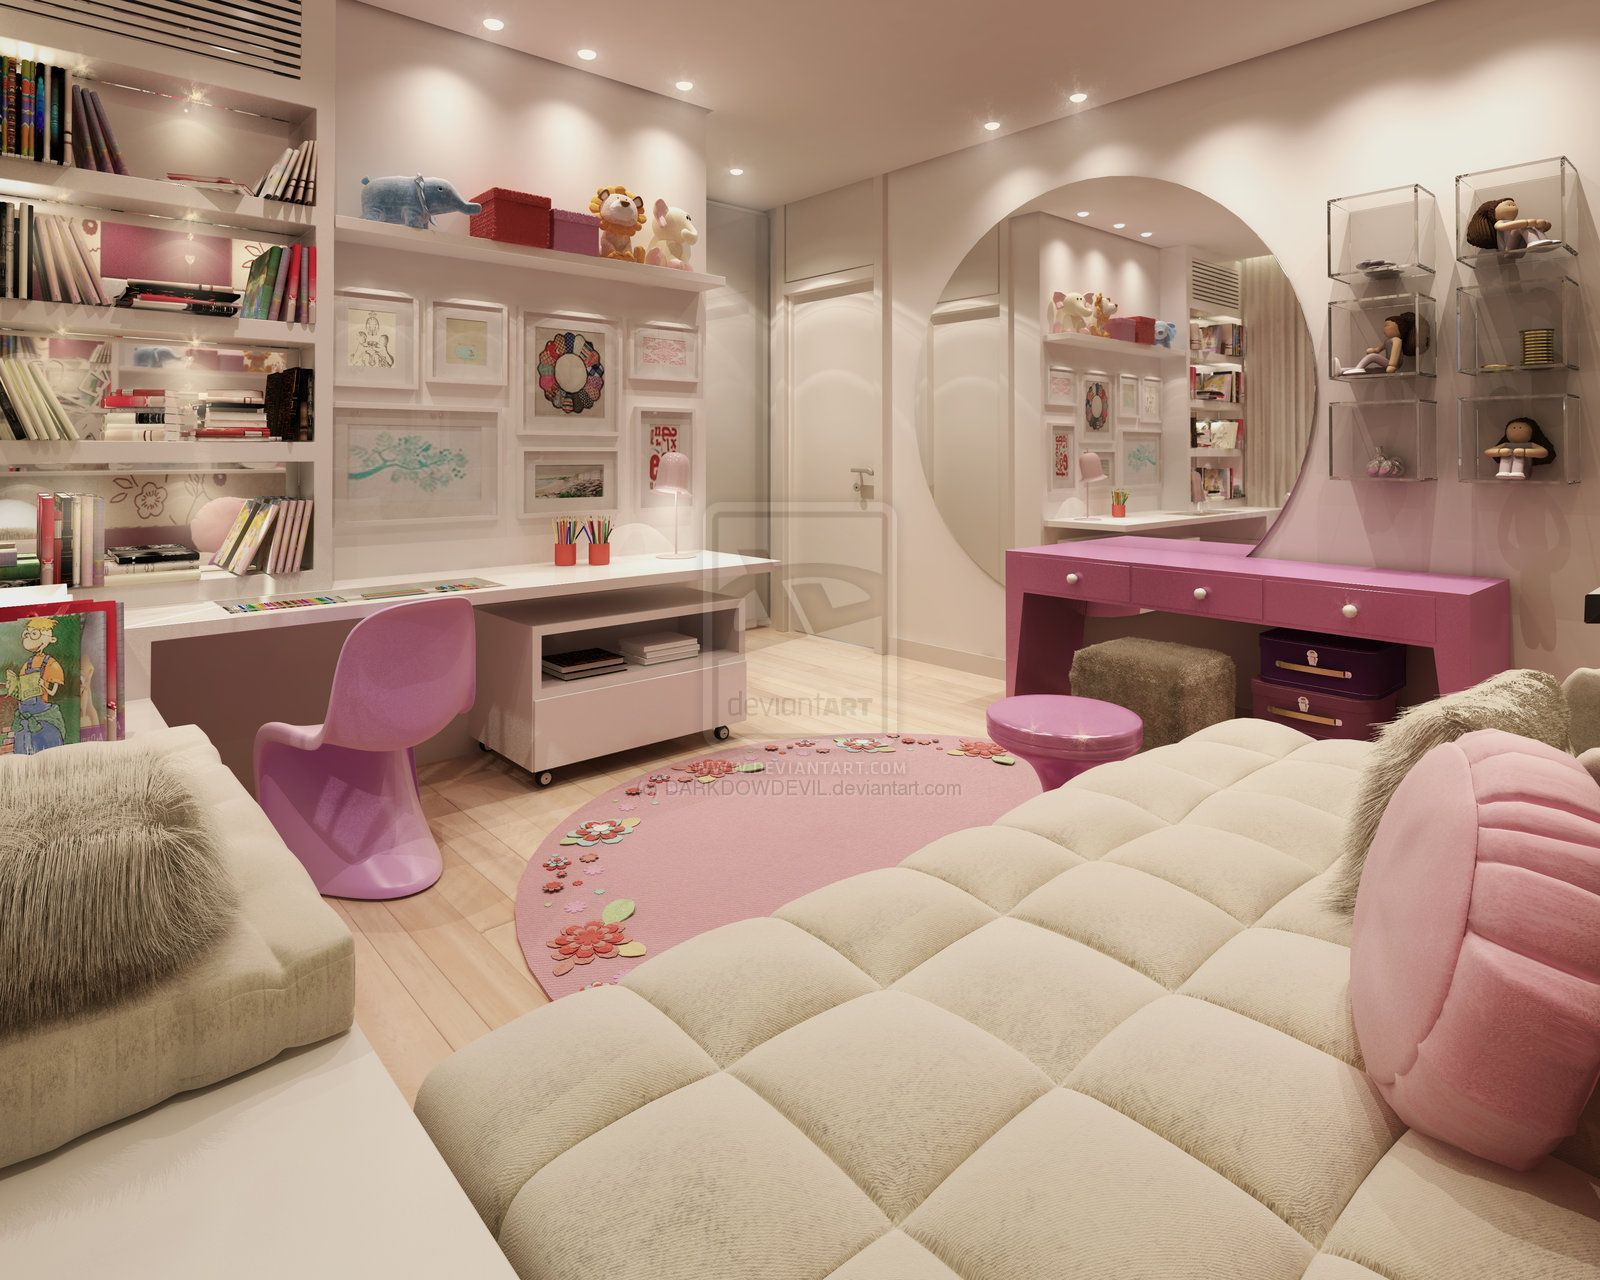 Teen Girls Room Designs Girls' Bedroom Decoration Ideas And Tips  Teen Room Designs Teen